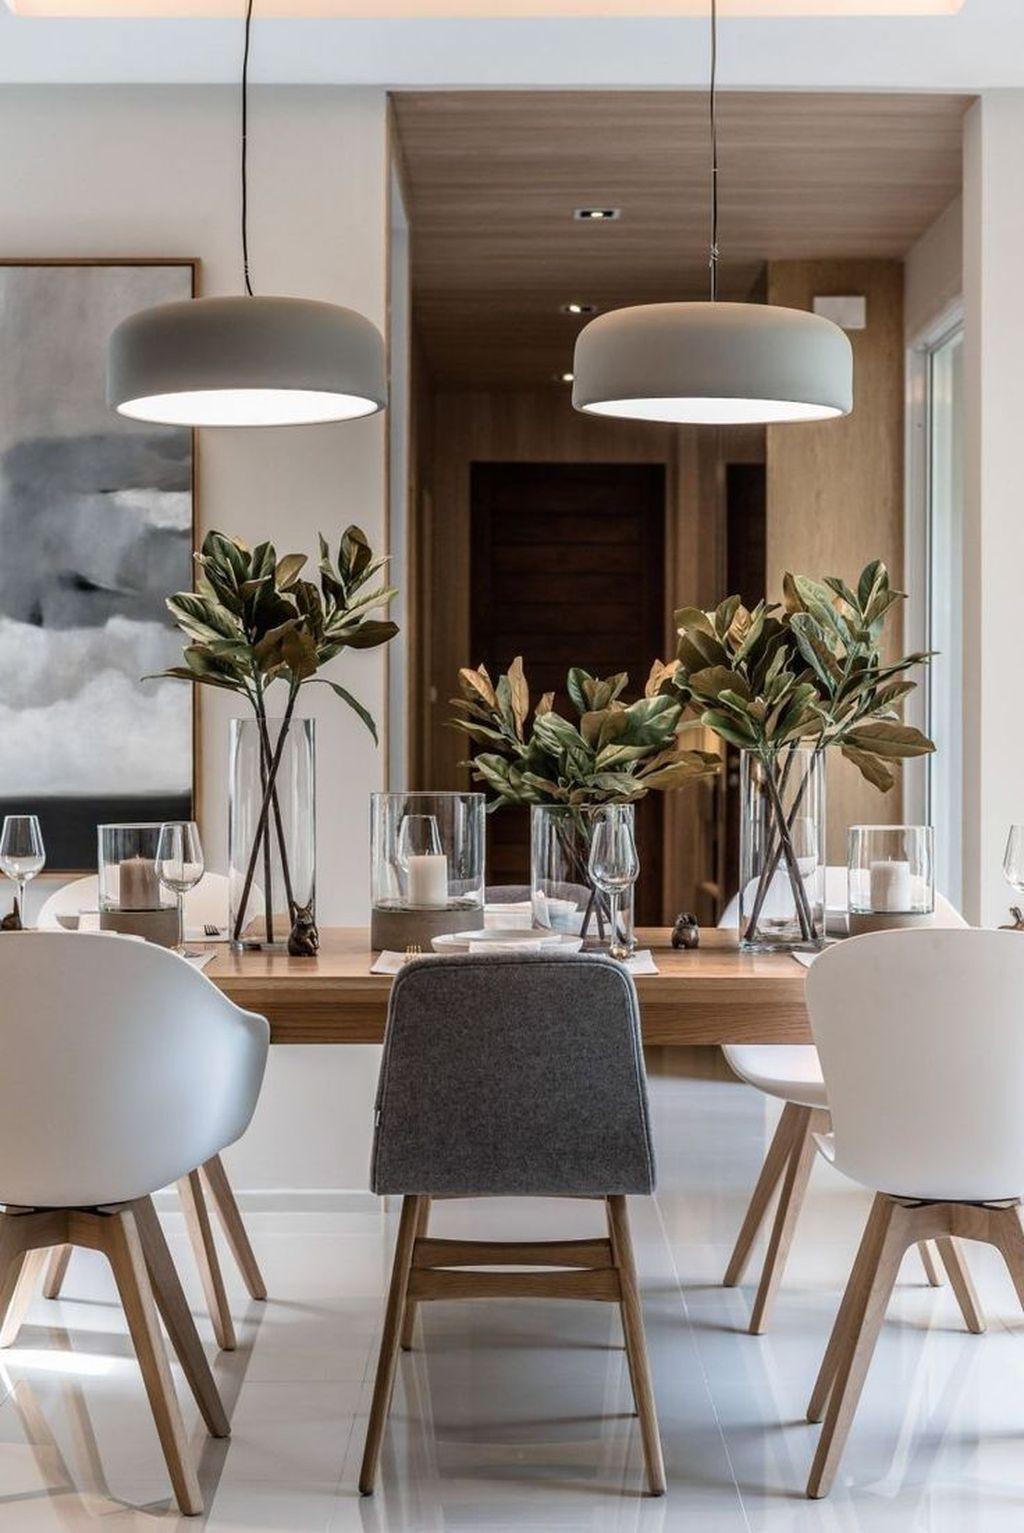 Admirable Dining Room Design Ideas You Will Love 31 1